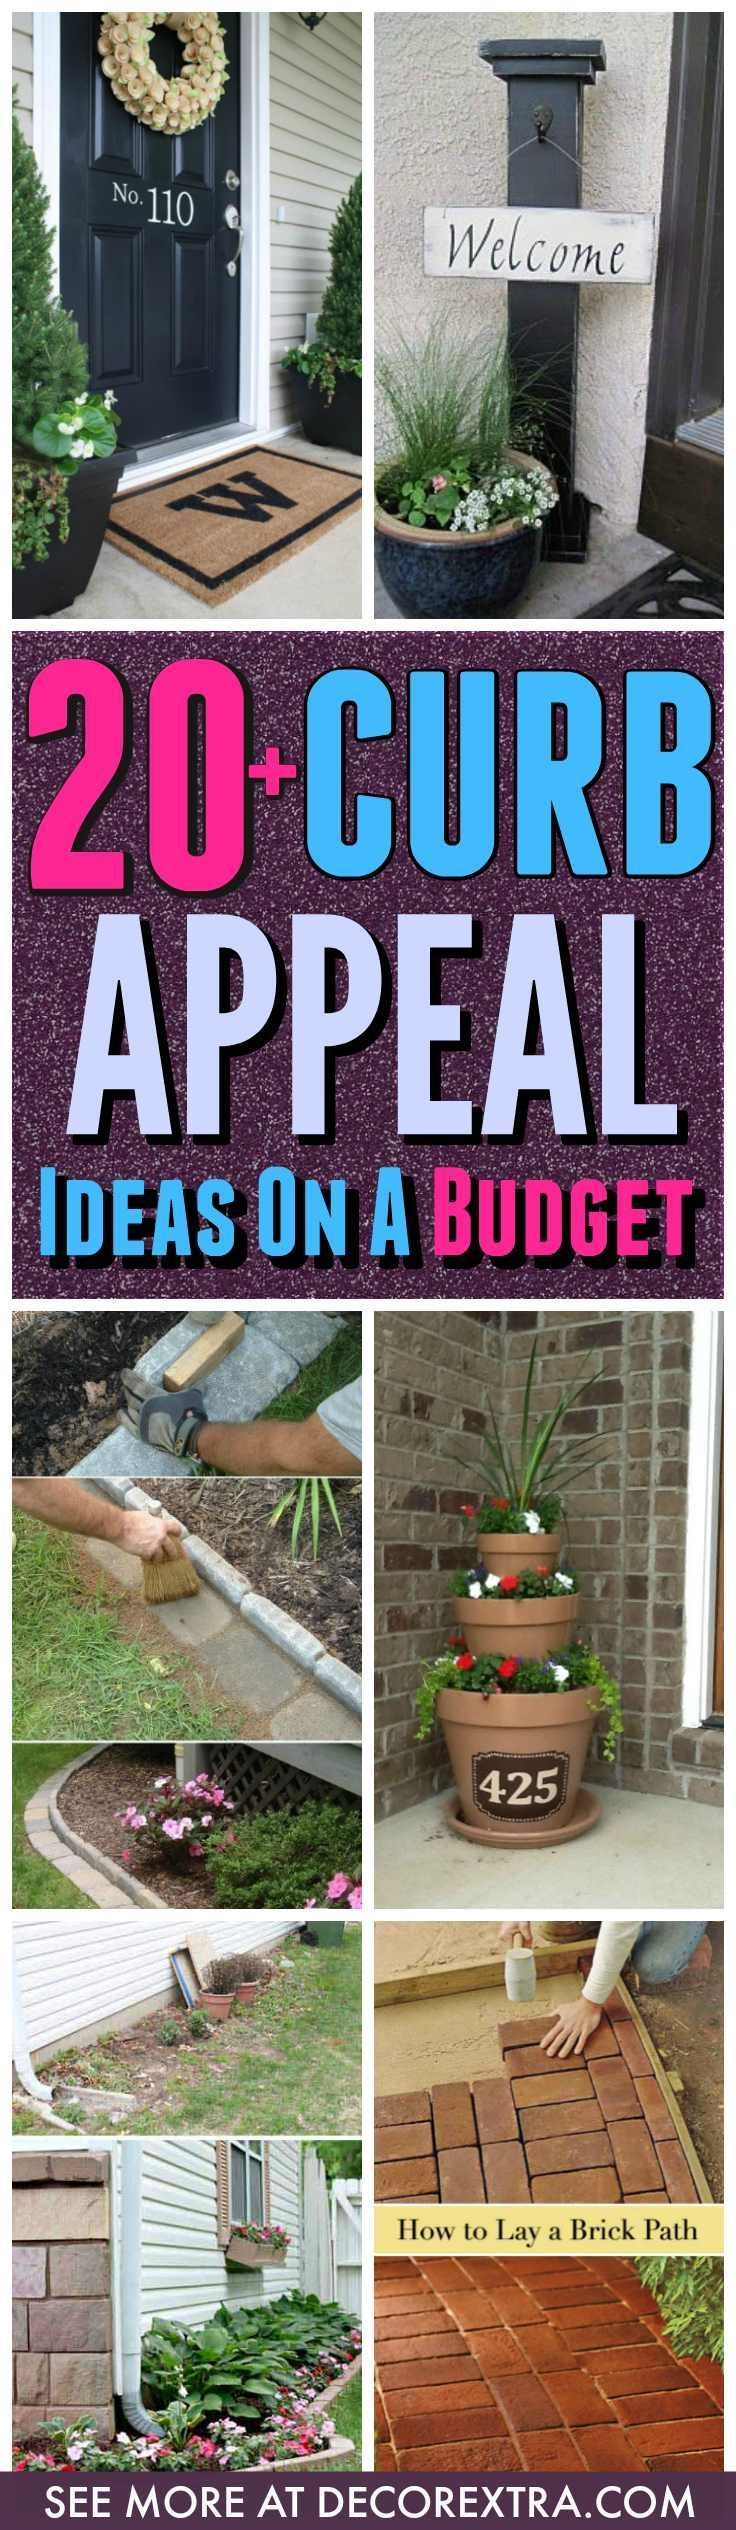 20 easy diy curb appeal ideas on a budget diy backyard ideas